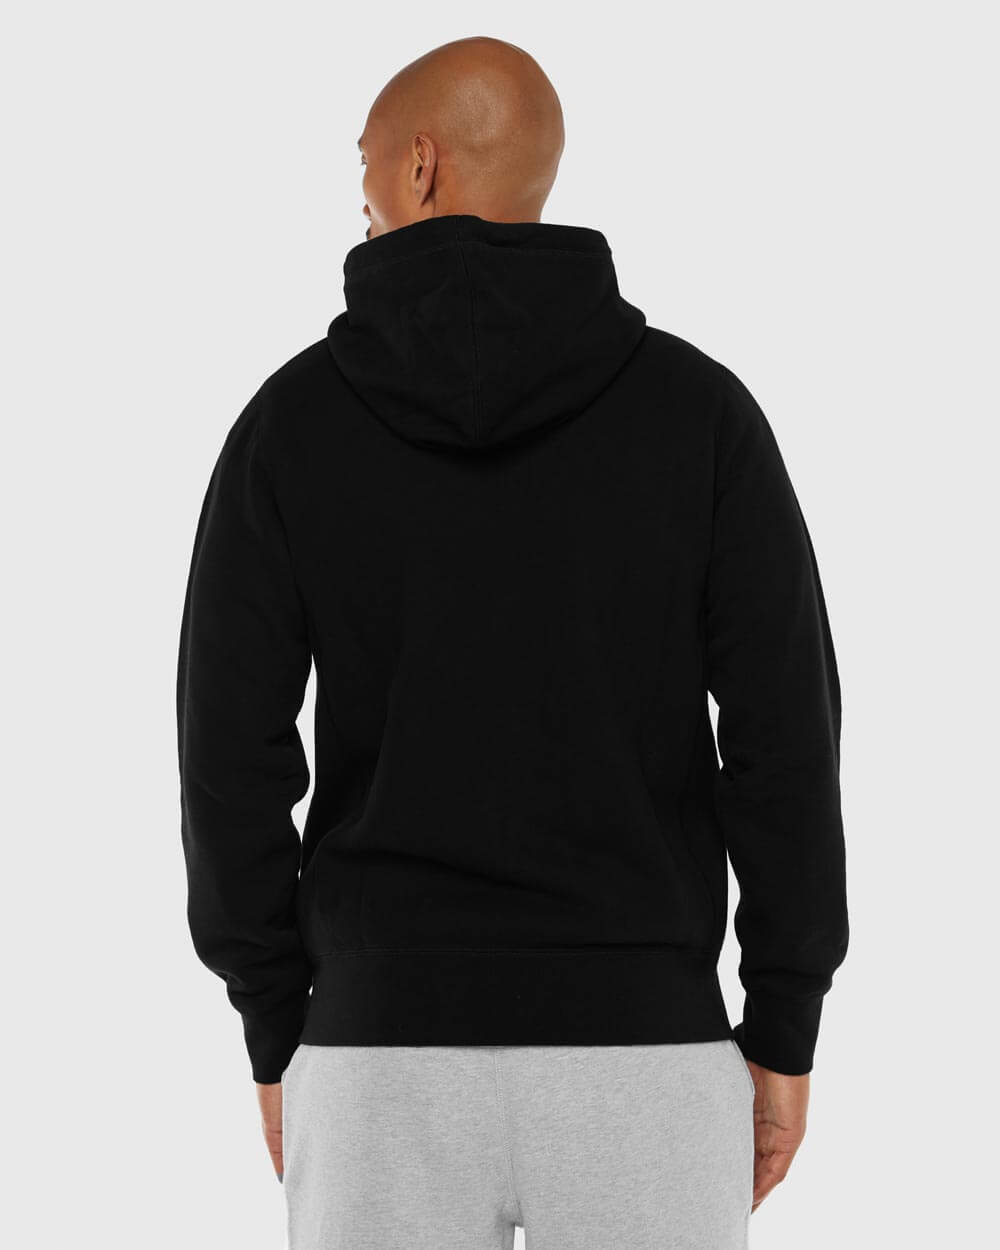 MID-WEIGHT FRENCH TERRY ZIP HOODIE - BLACK